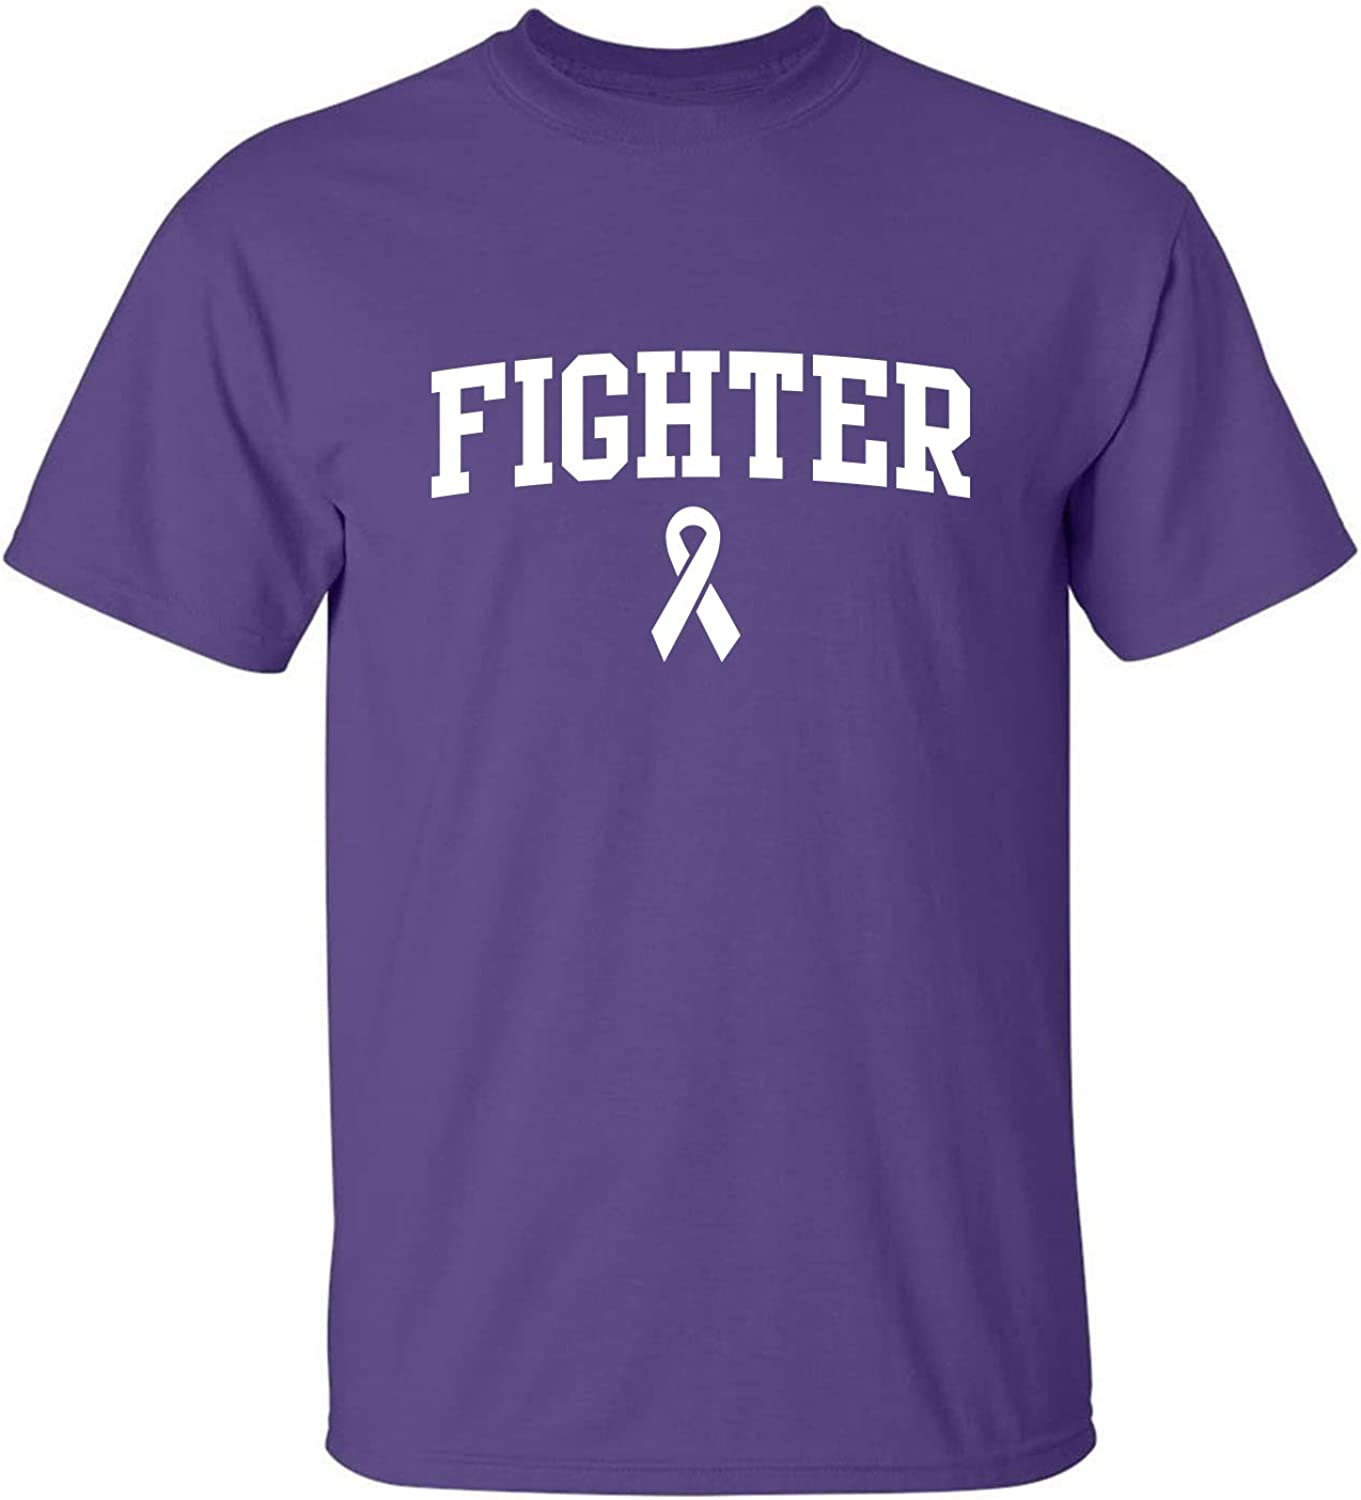 Fighter Ribbon Adult T-Shirt in Purple - XXXX-Large